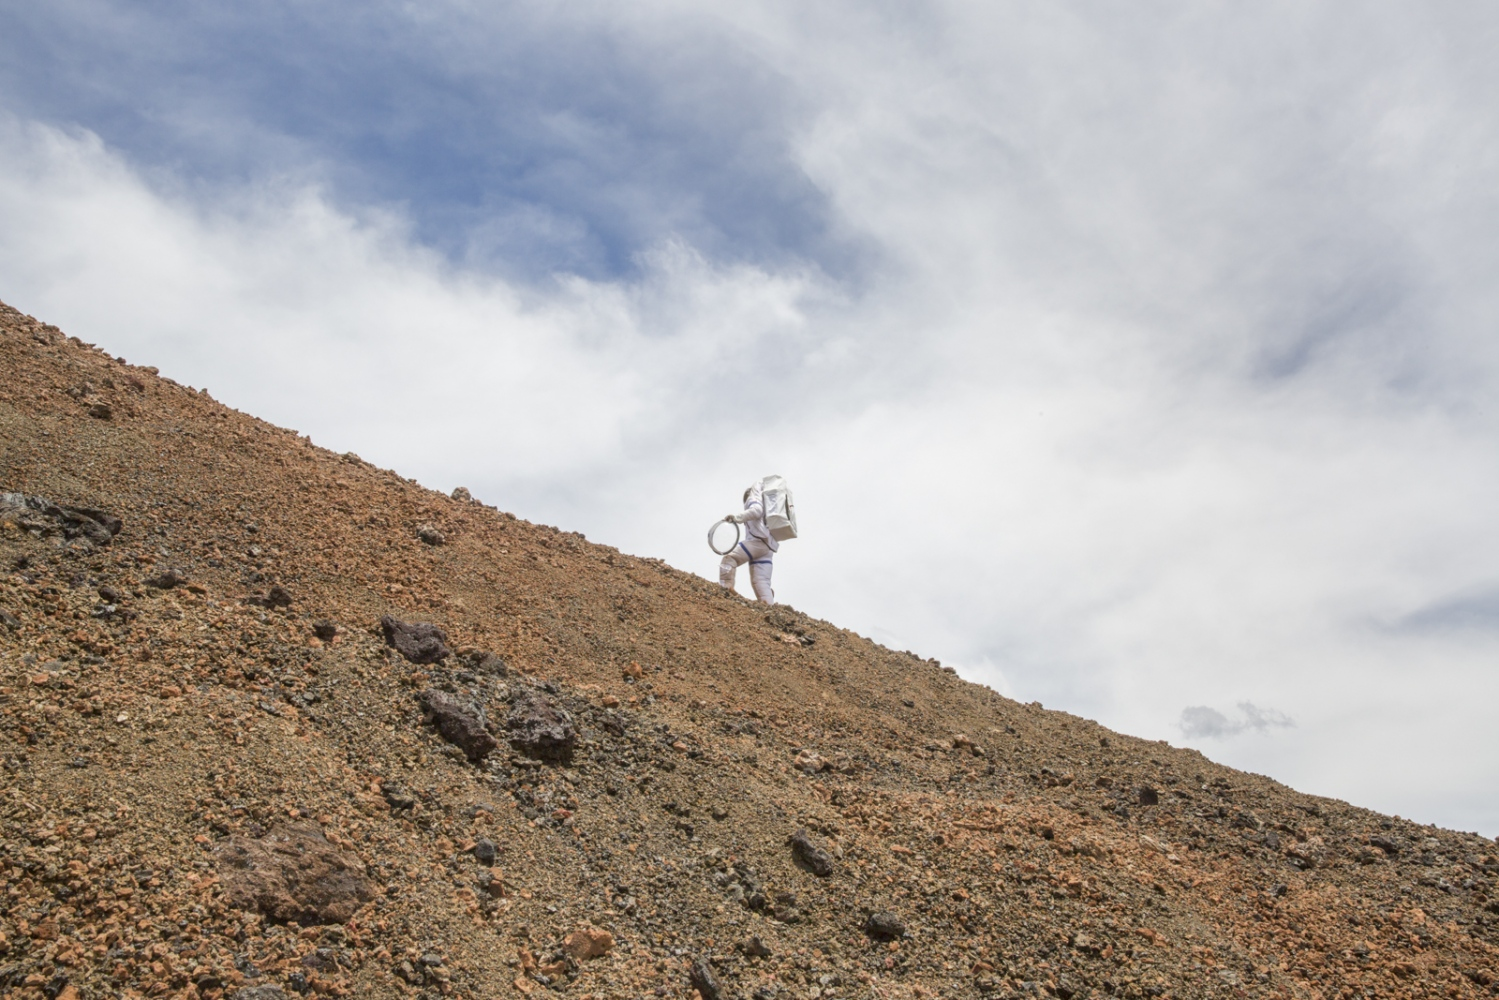 Researcher Jocelyn Dunn walks for the first time in a spacesuit but without a helmet after the end of a mission which saw her confined in a dome where she lived for eight months together with other other five researchers in the crater of the volcano Mauna Loa, Hawaii, Big Island.